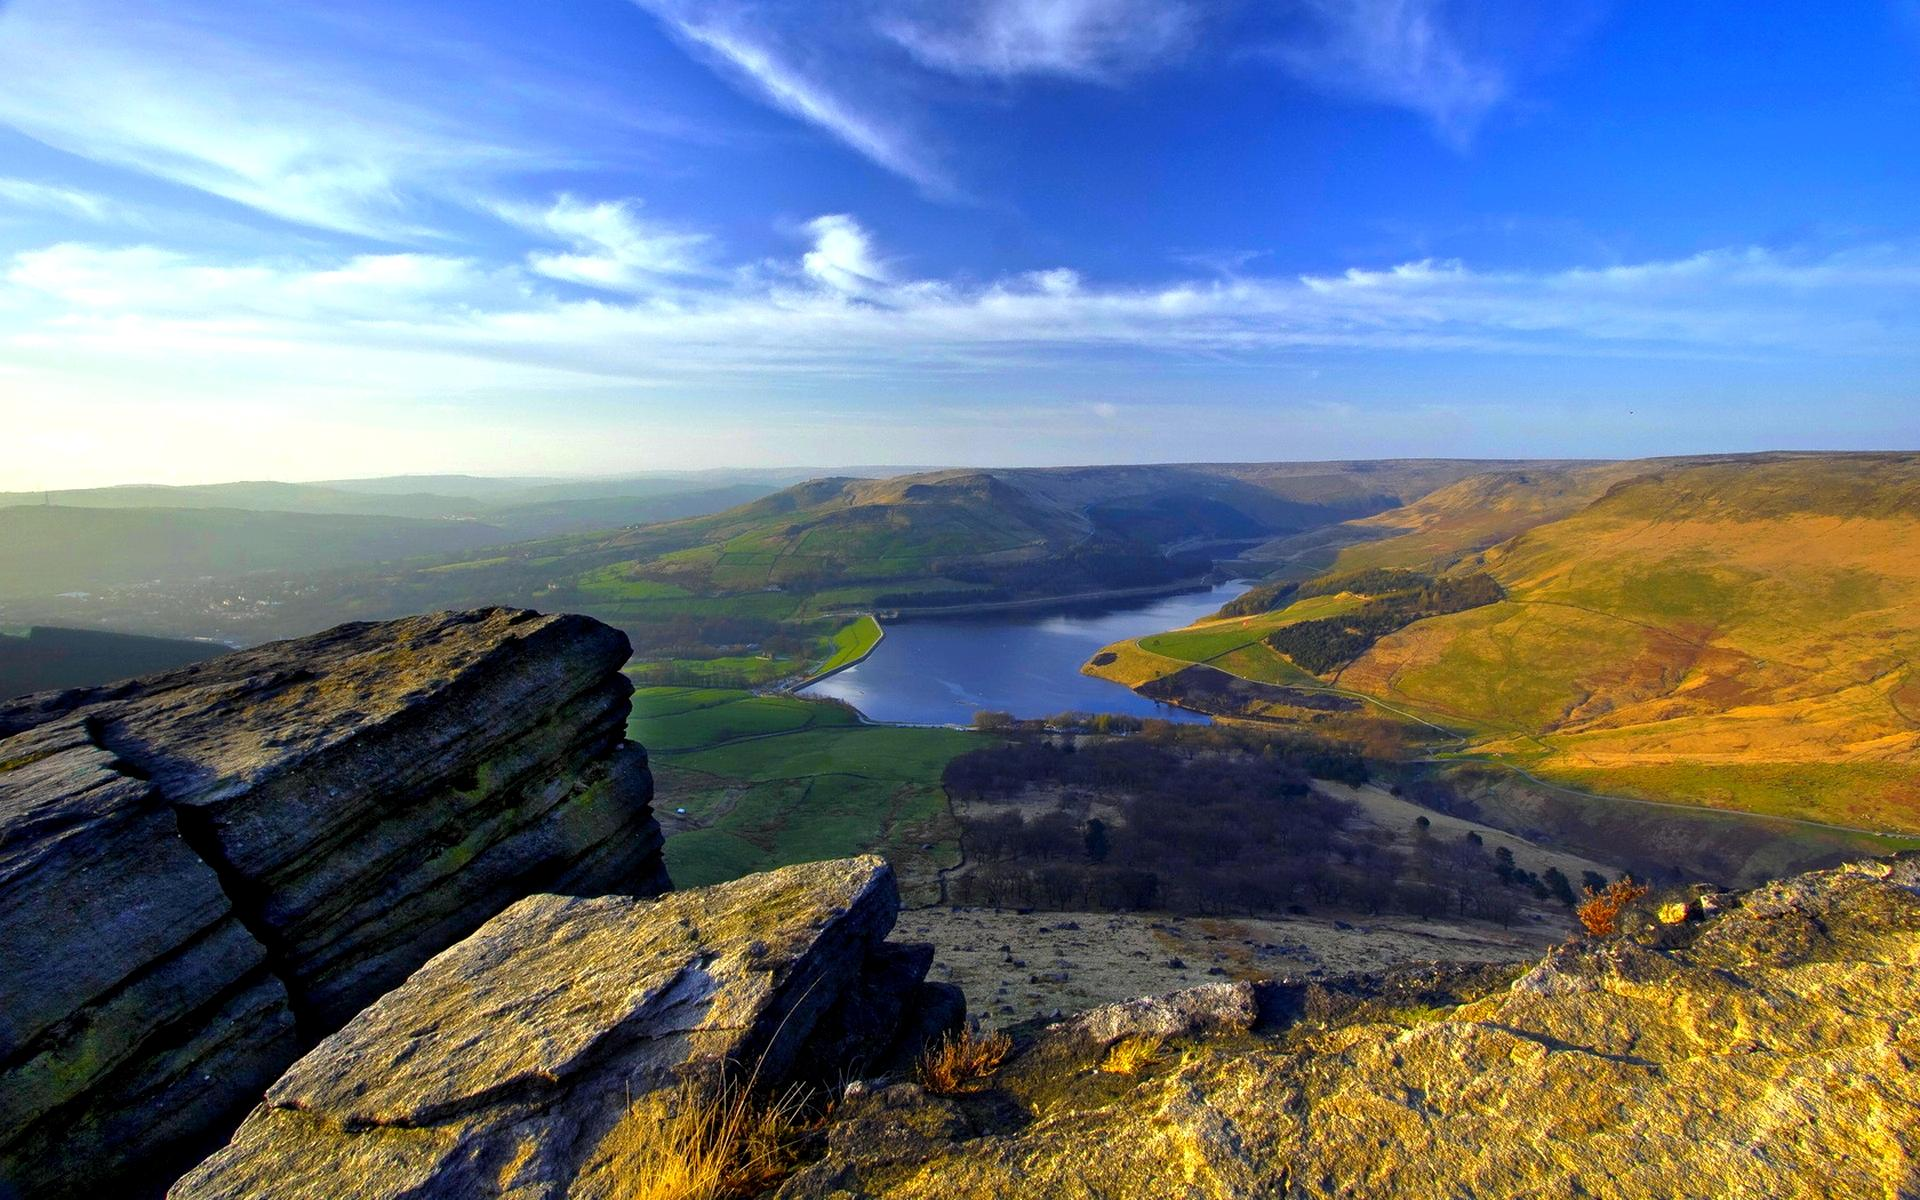 A View From Mountain wallpaper | nature and landscape | Wallpaper Better